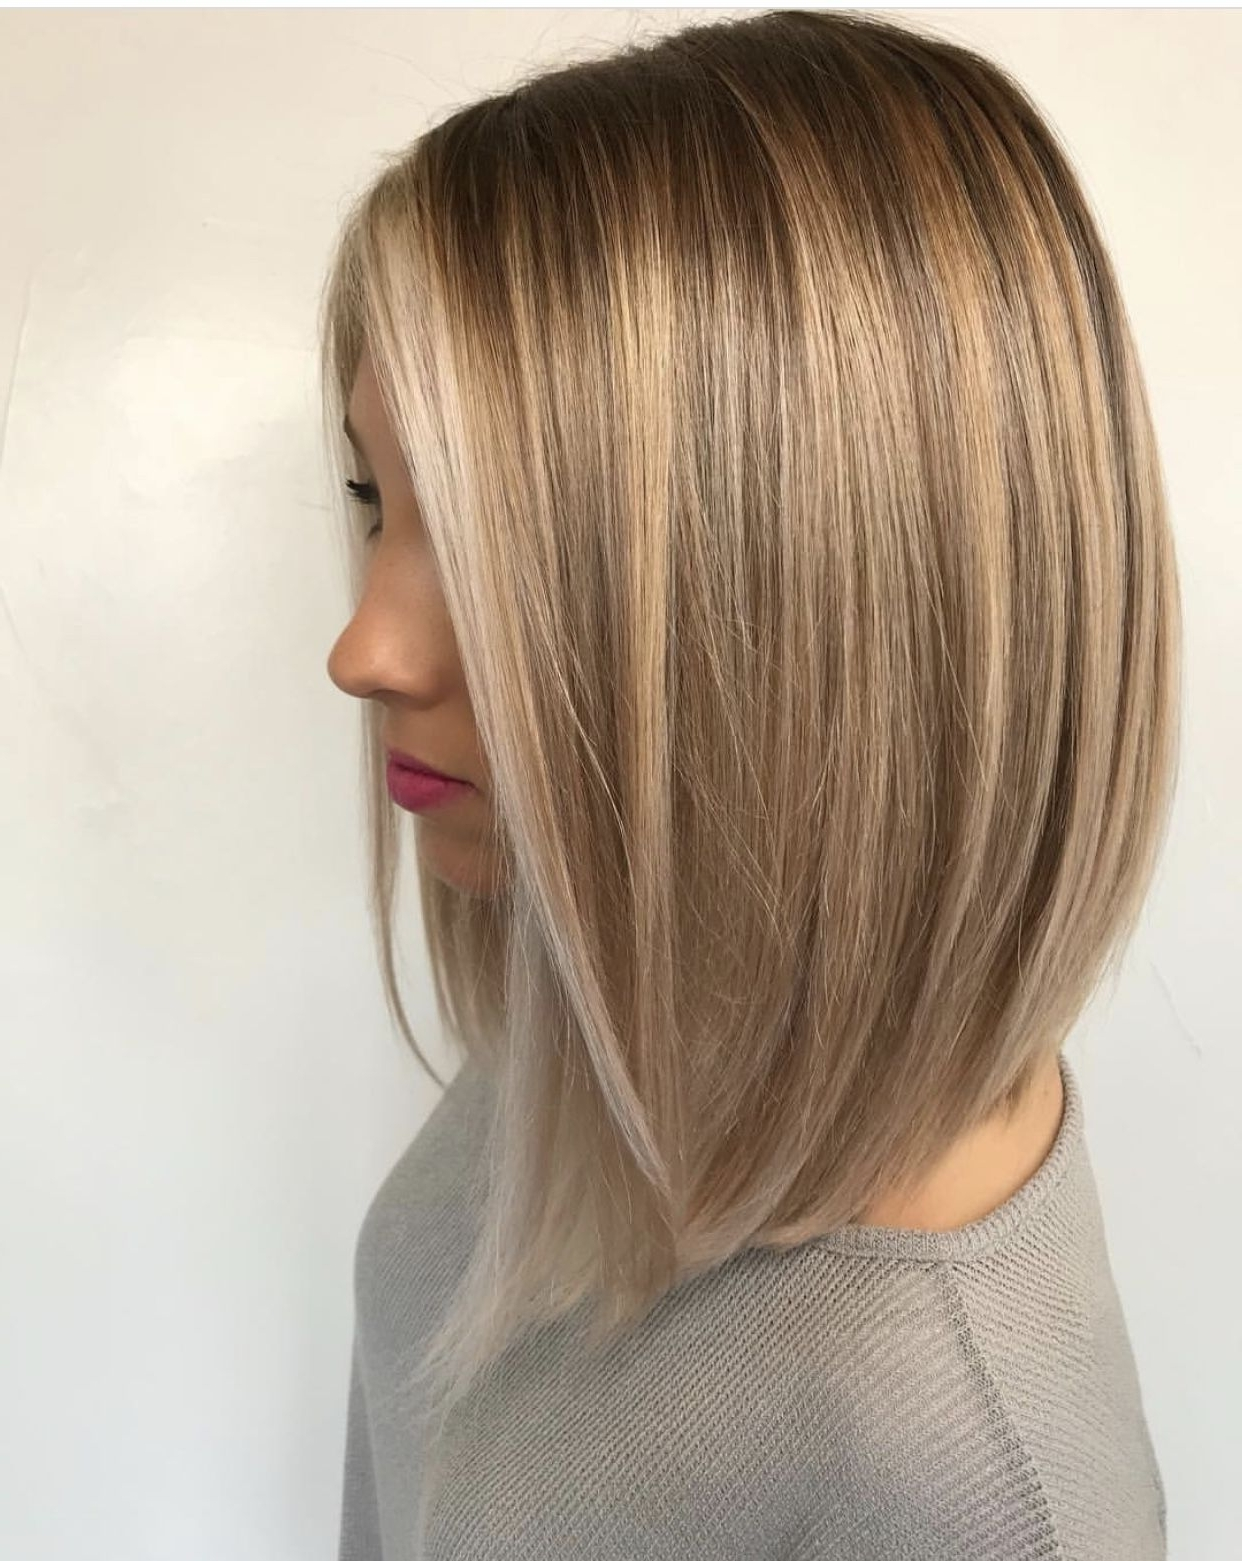 Most Recently Released Dirty Blonde Hairstyles With Long Bob Haircut, Blonde Hair Color, Dirty Blonde Color, Stylish (View 13 of 20)